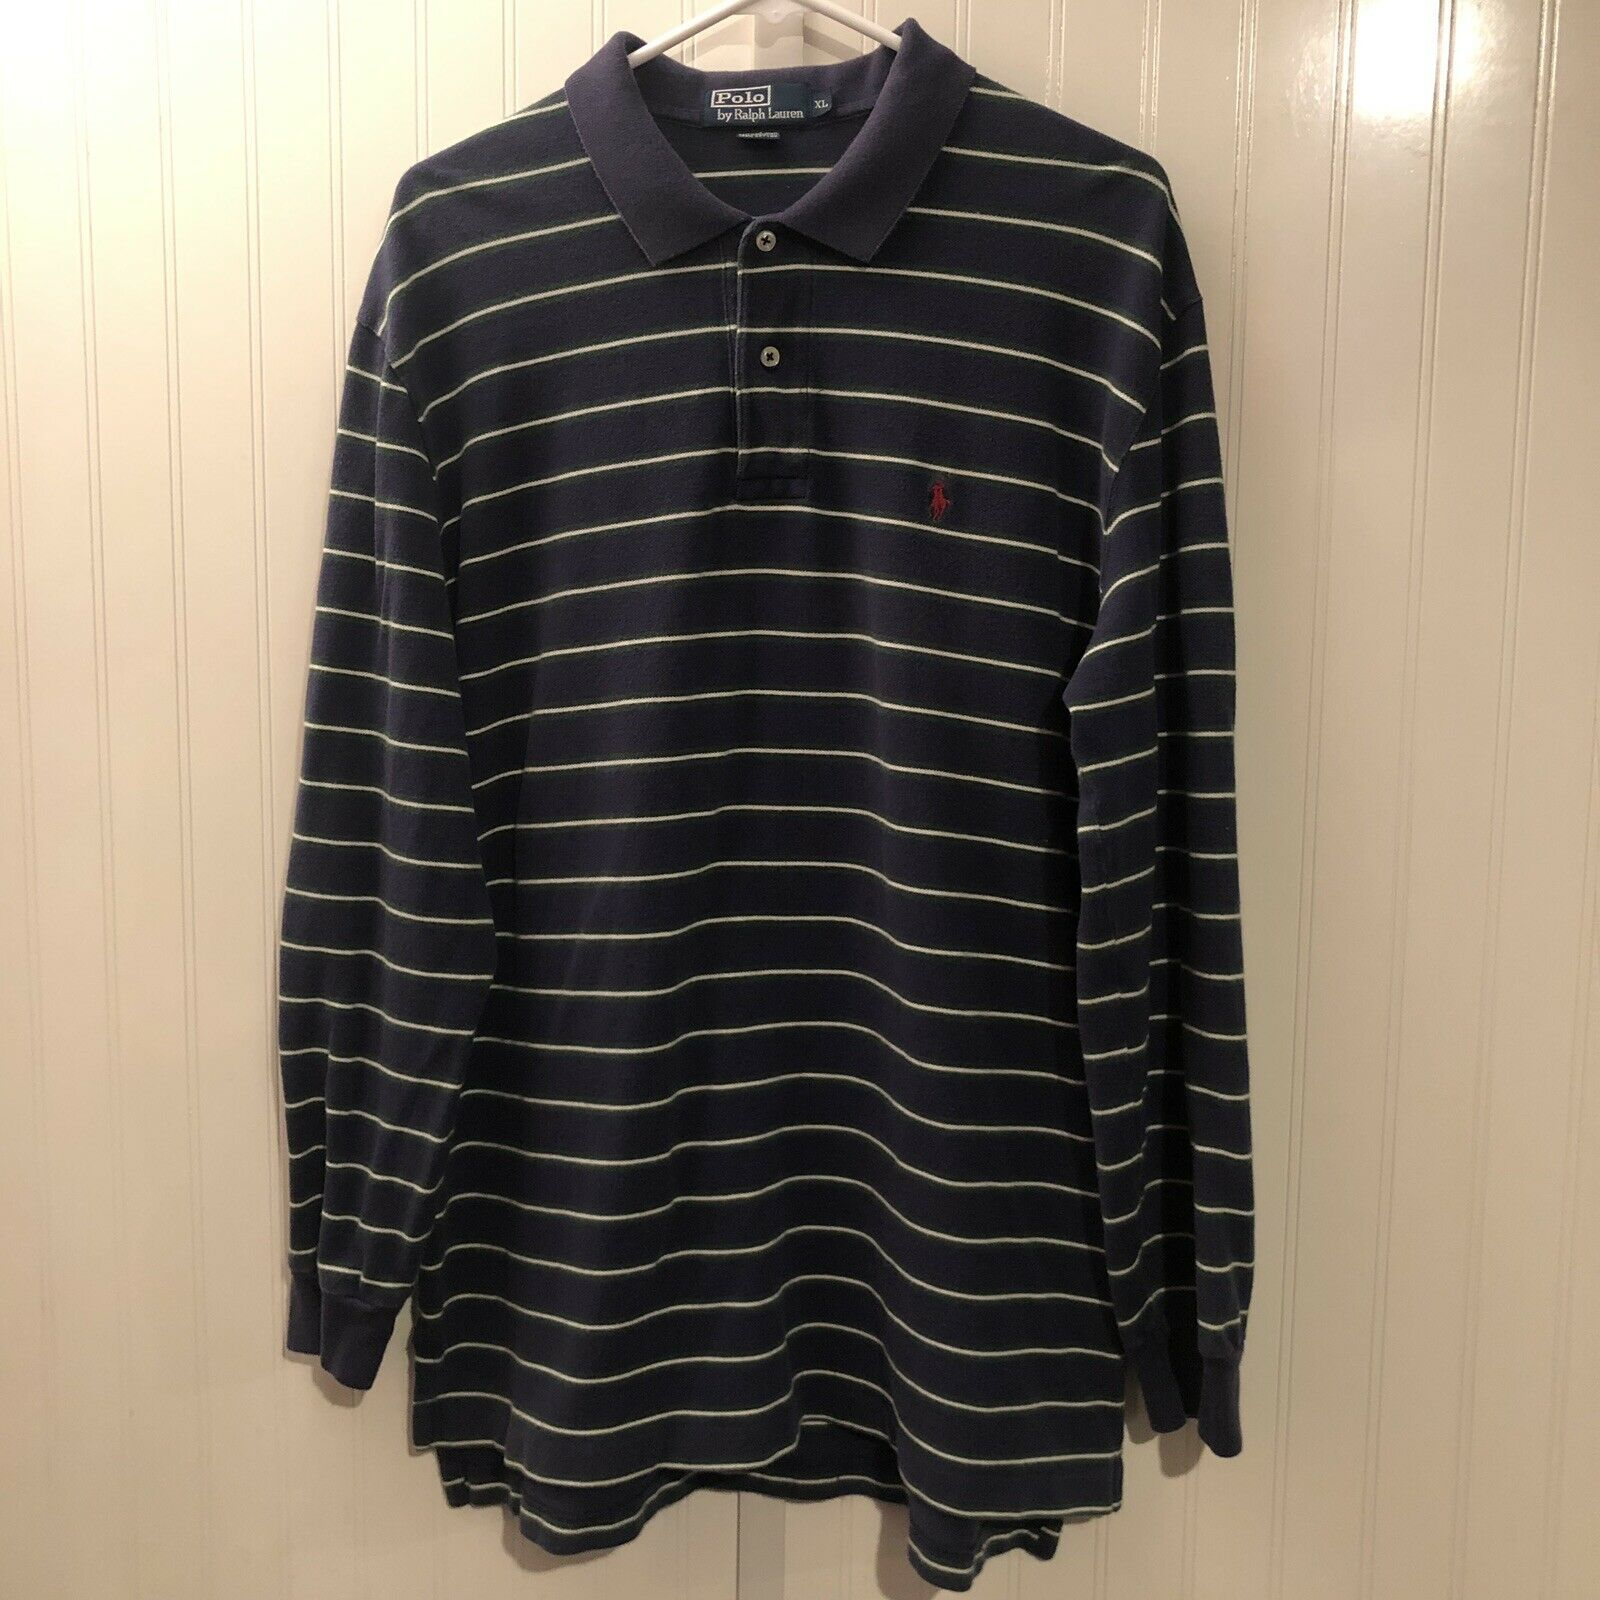 c8f47a2d1f 90s Ralph Lauren Polo Rugby Shirt Striped Chest Pony Mens XL Vintage Vtg X- Large natabp1873-Casual Shirts   Tops